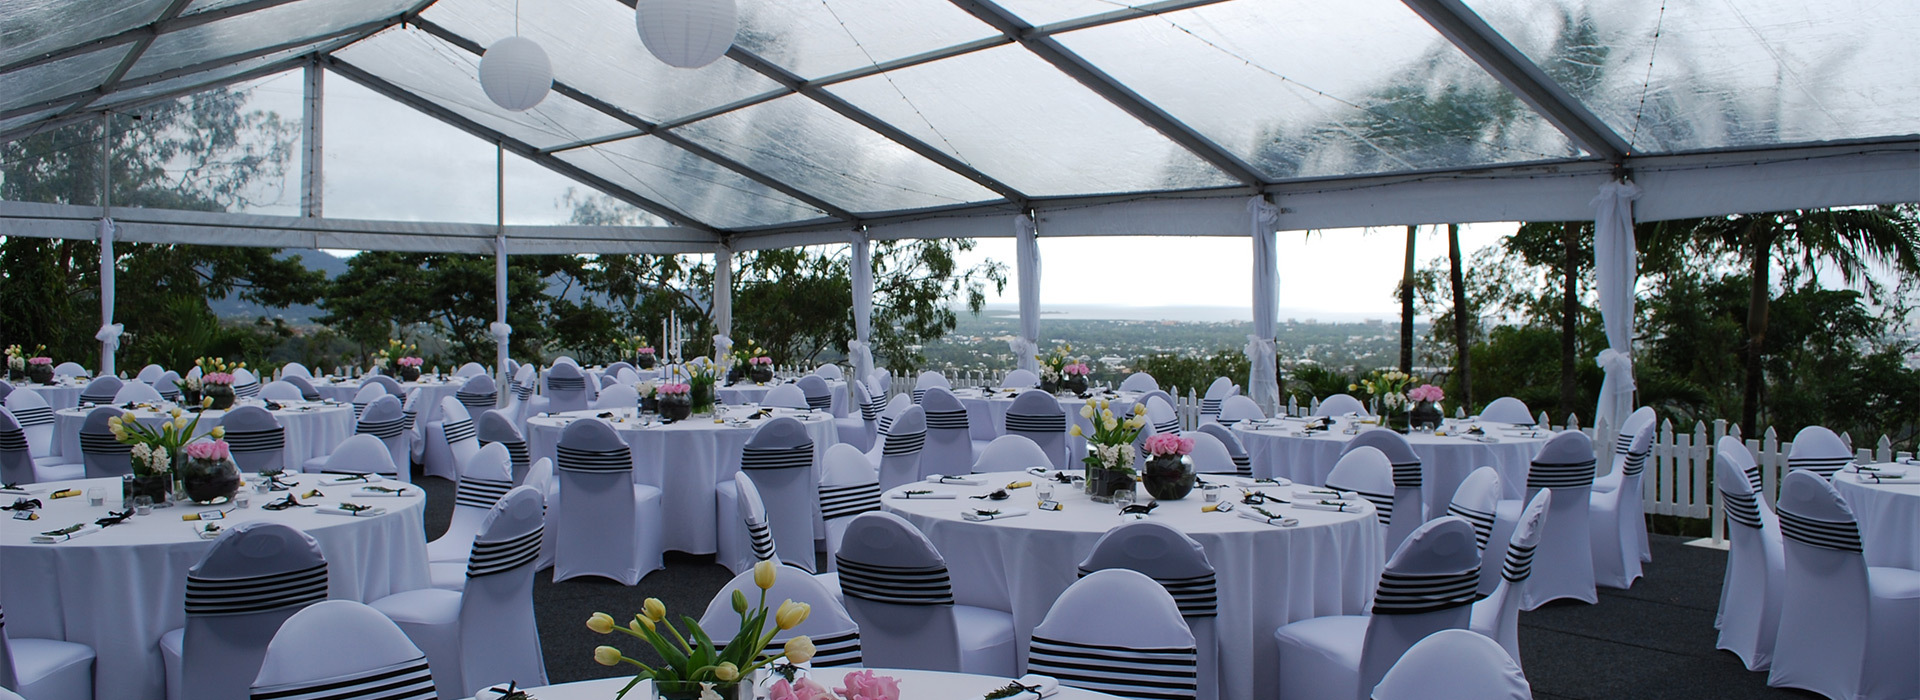 Event party equipment hire in cairns north queensland junglespirit Image collections